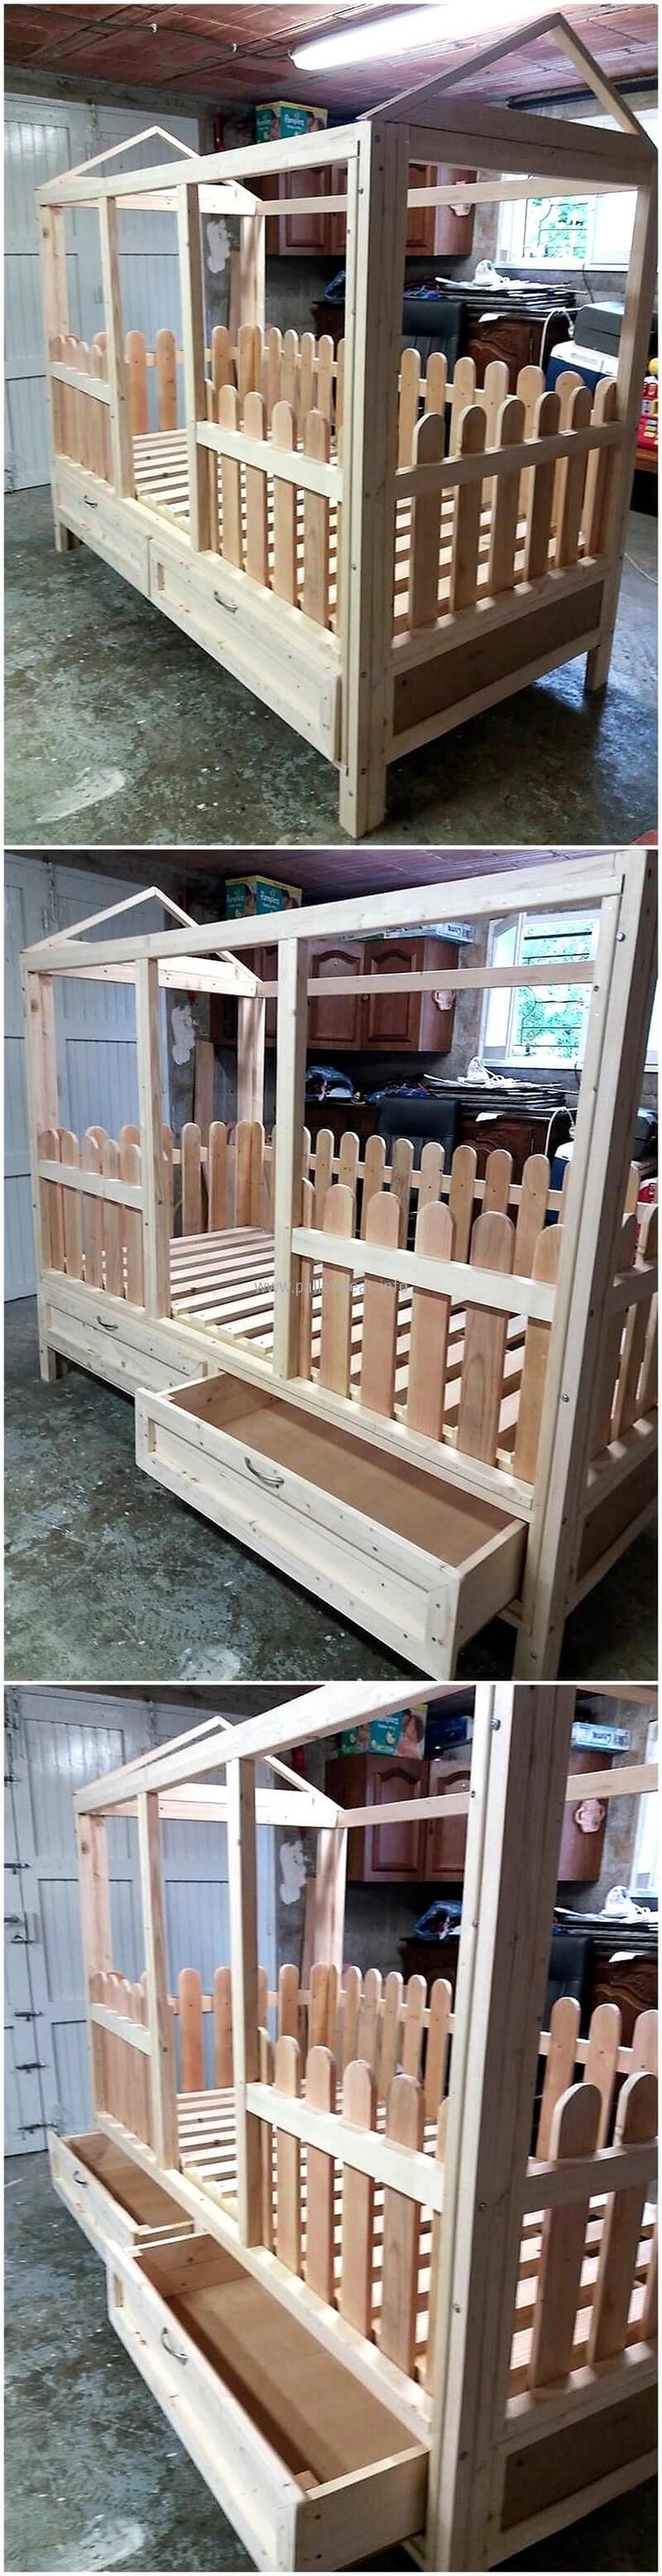 Amazing Uses For Old Used Shipping Pallets Diy Pallet ProjectsKid ProjectsPallet IdeasWood